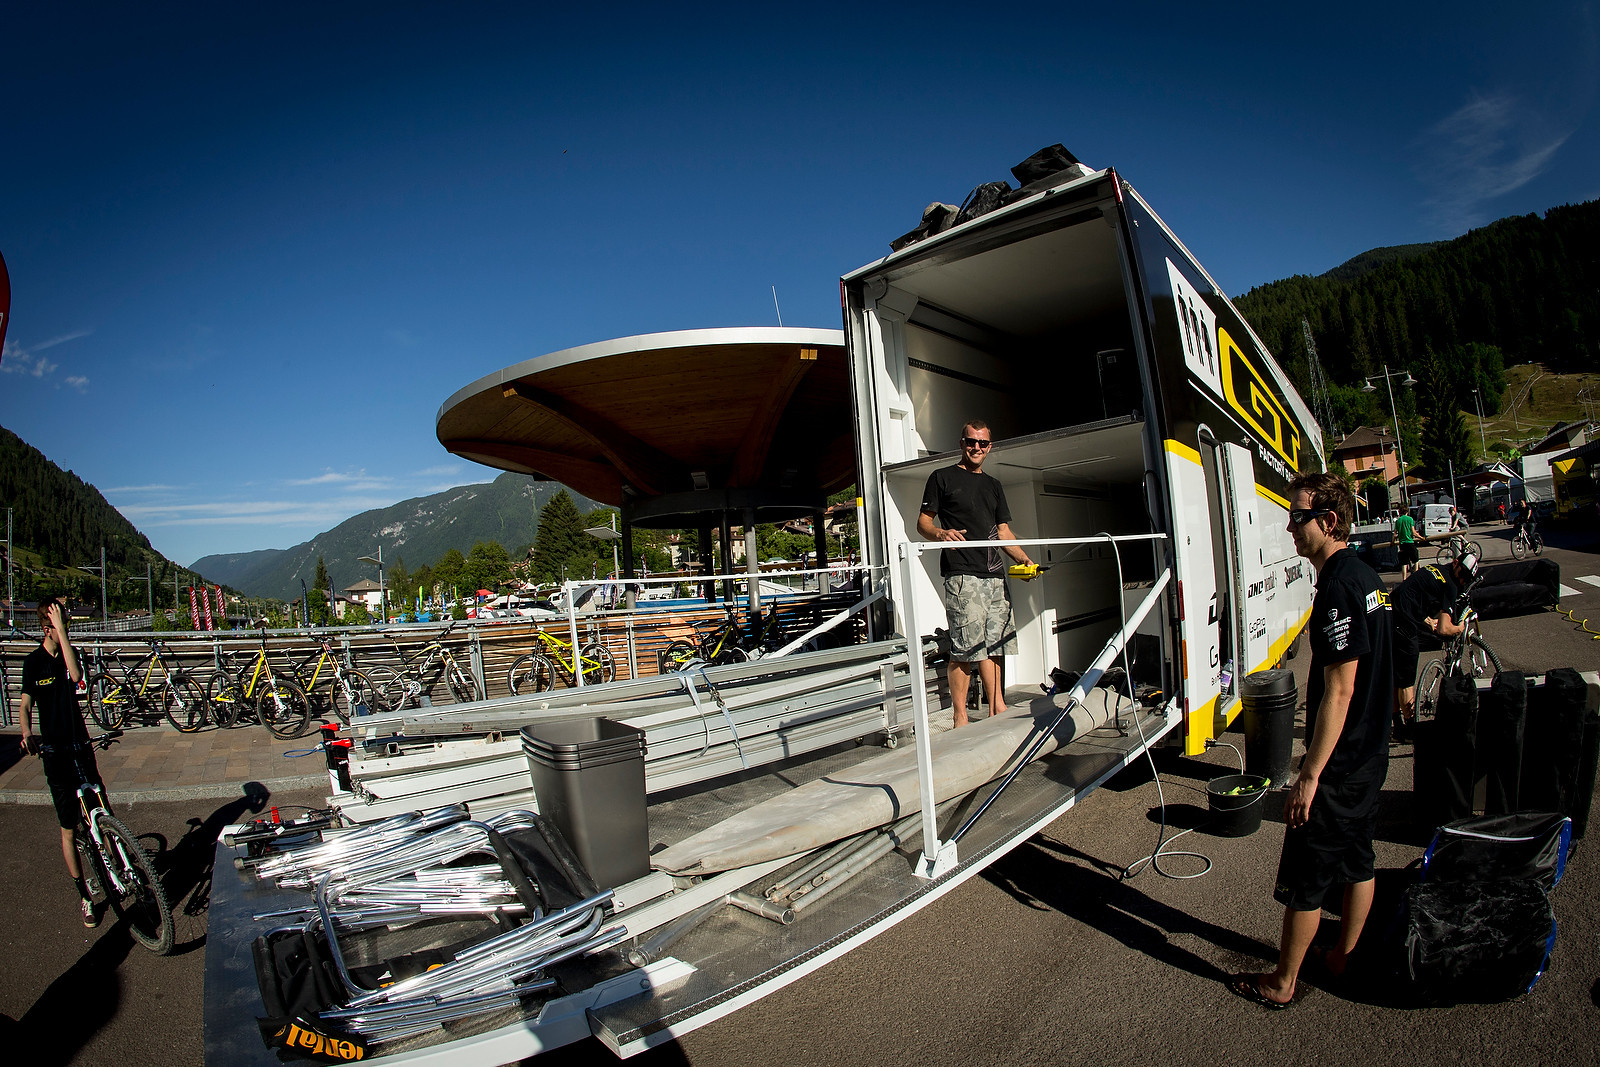 GT Factory Racing Big Rig with Elevator in Trailer (Down) - Pit Bits: 2013 Val di Sole World Cup - Mountain Biking Pictures - Vital MTB